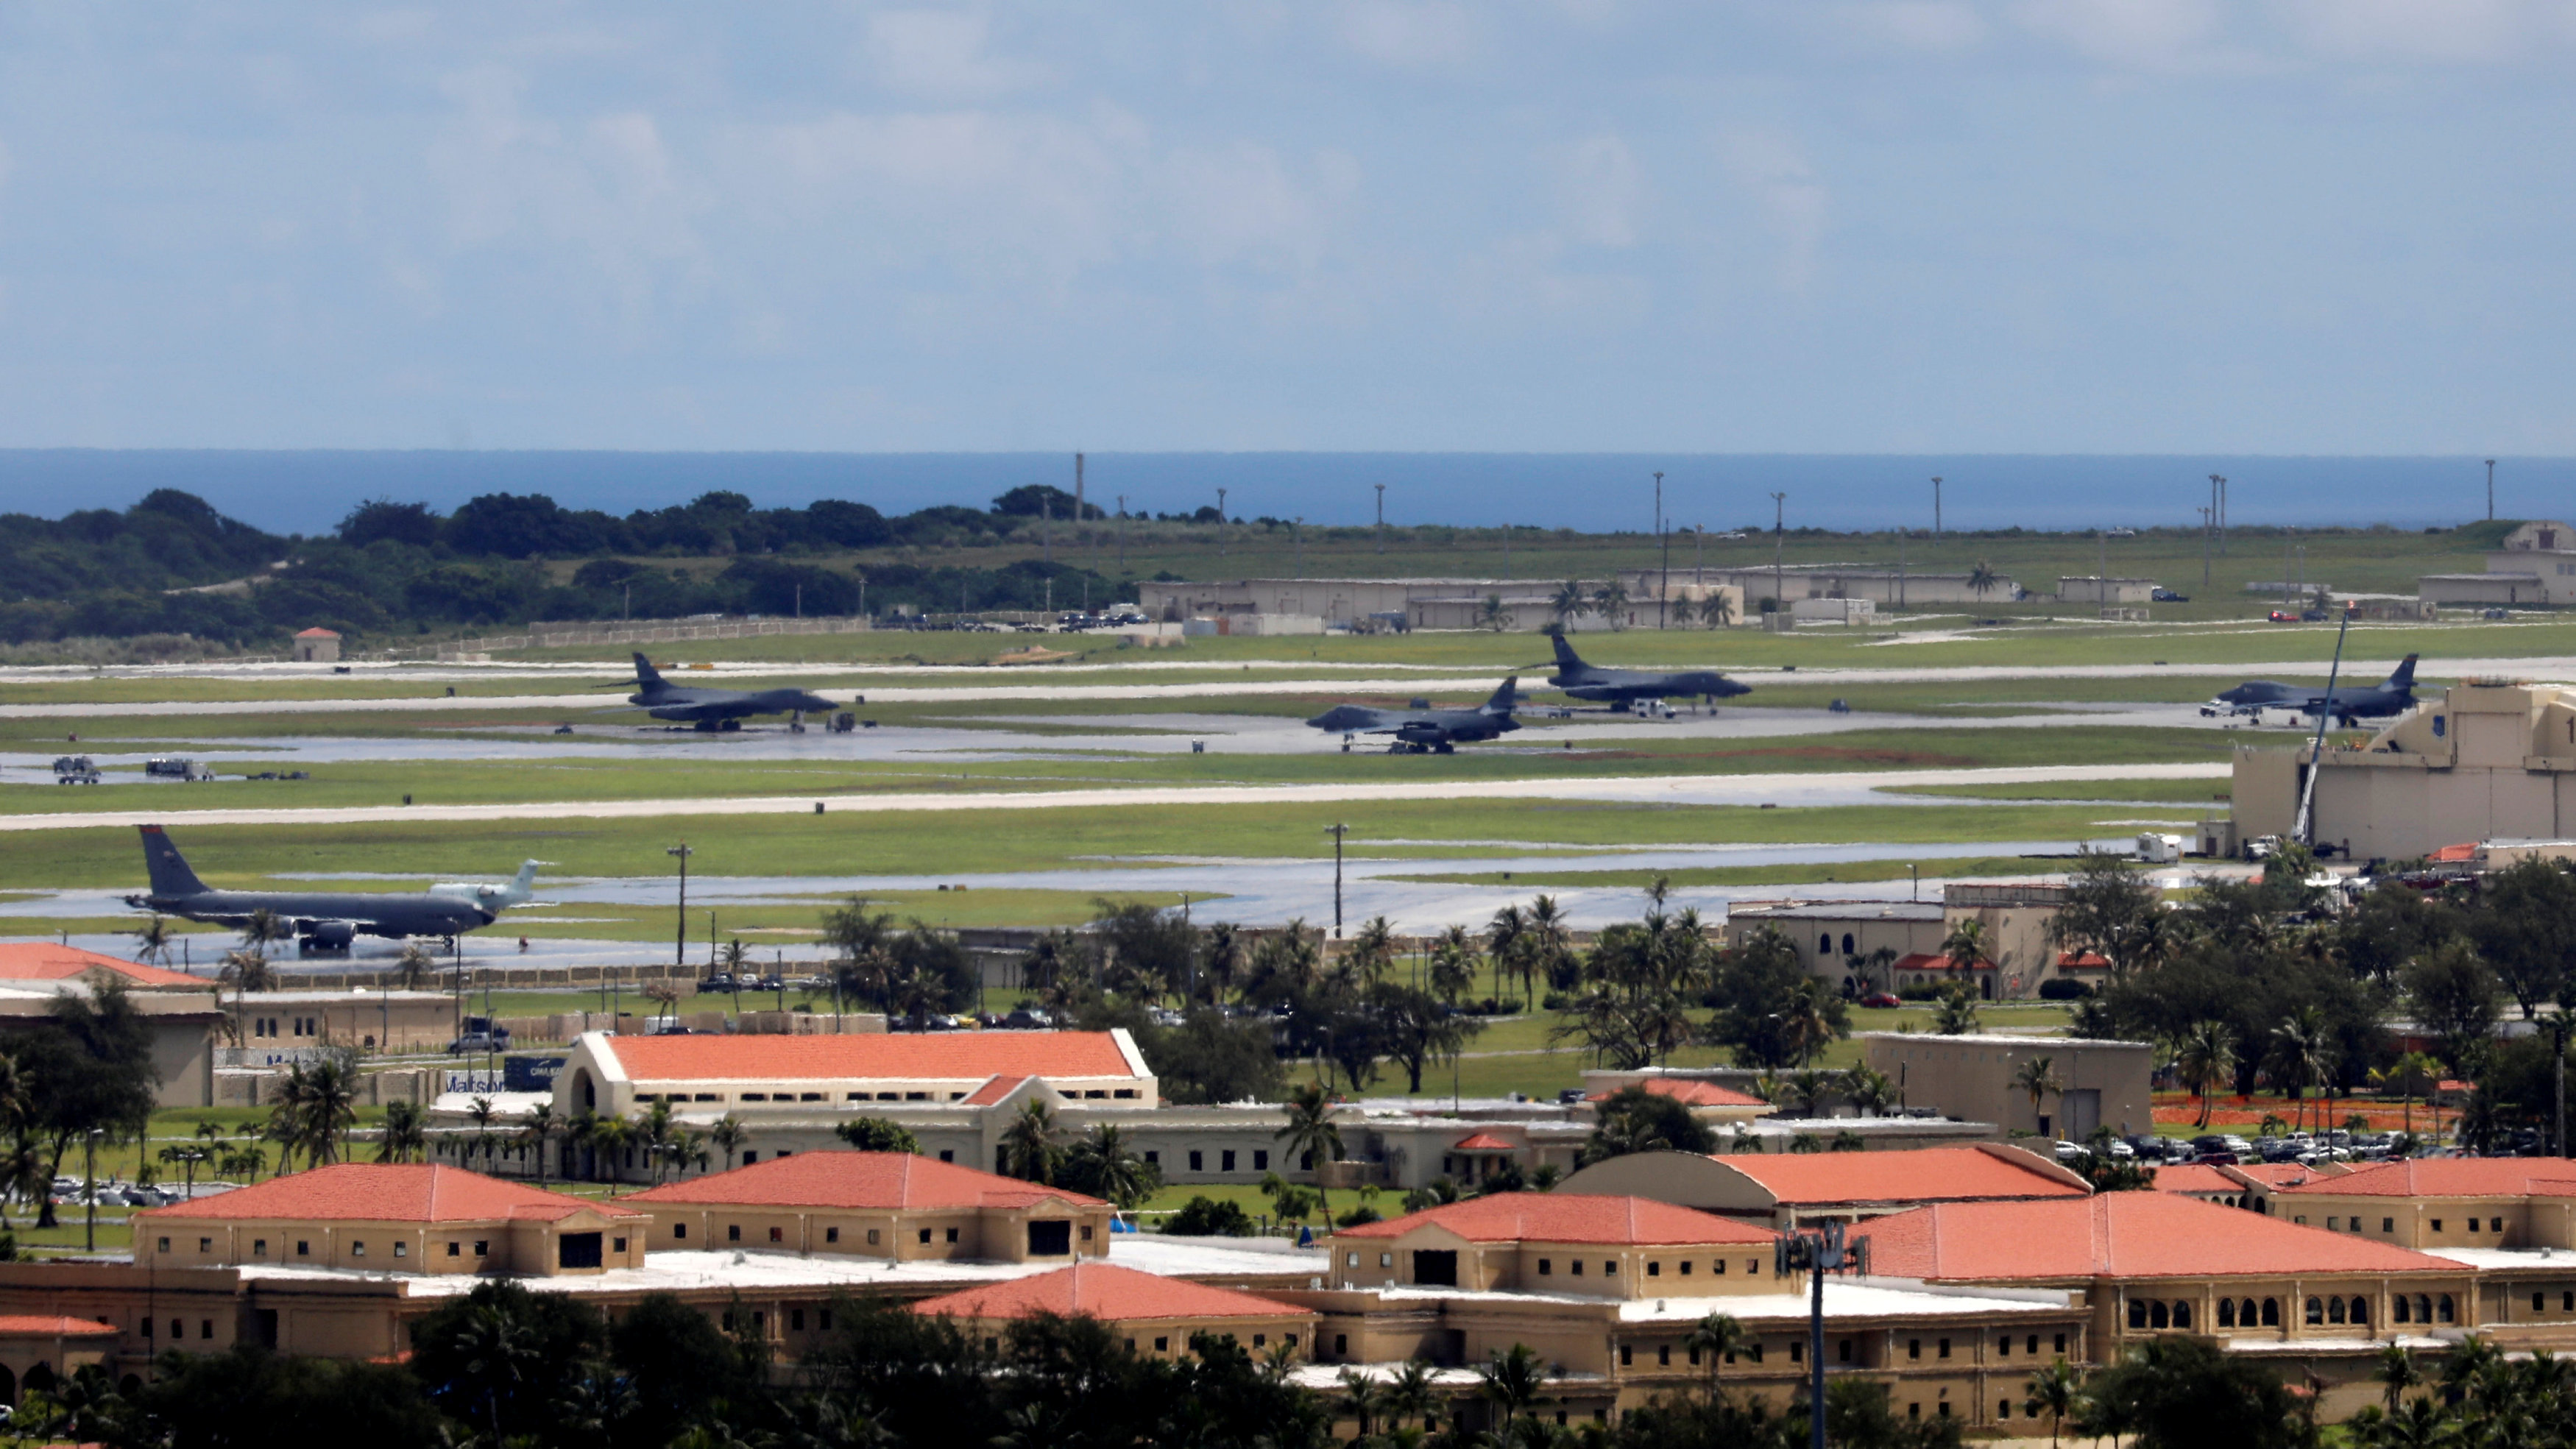 A view of U.S. military planes parked on the tarmac of Andersen Air Force base on the island of Guam, a U.S. Pacific Territory, August 15, 2017. REUTERS/Erik De Castro